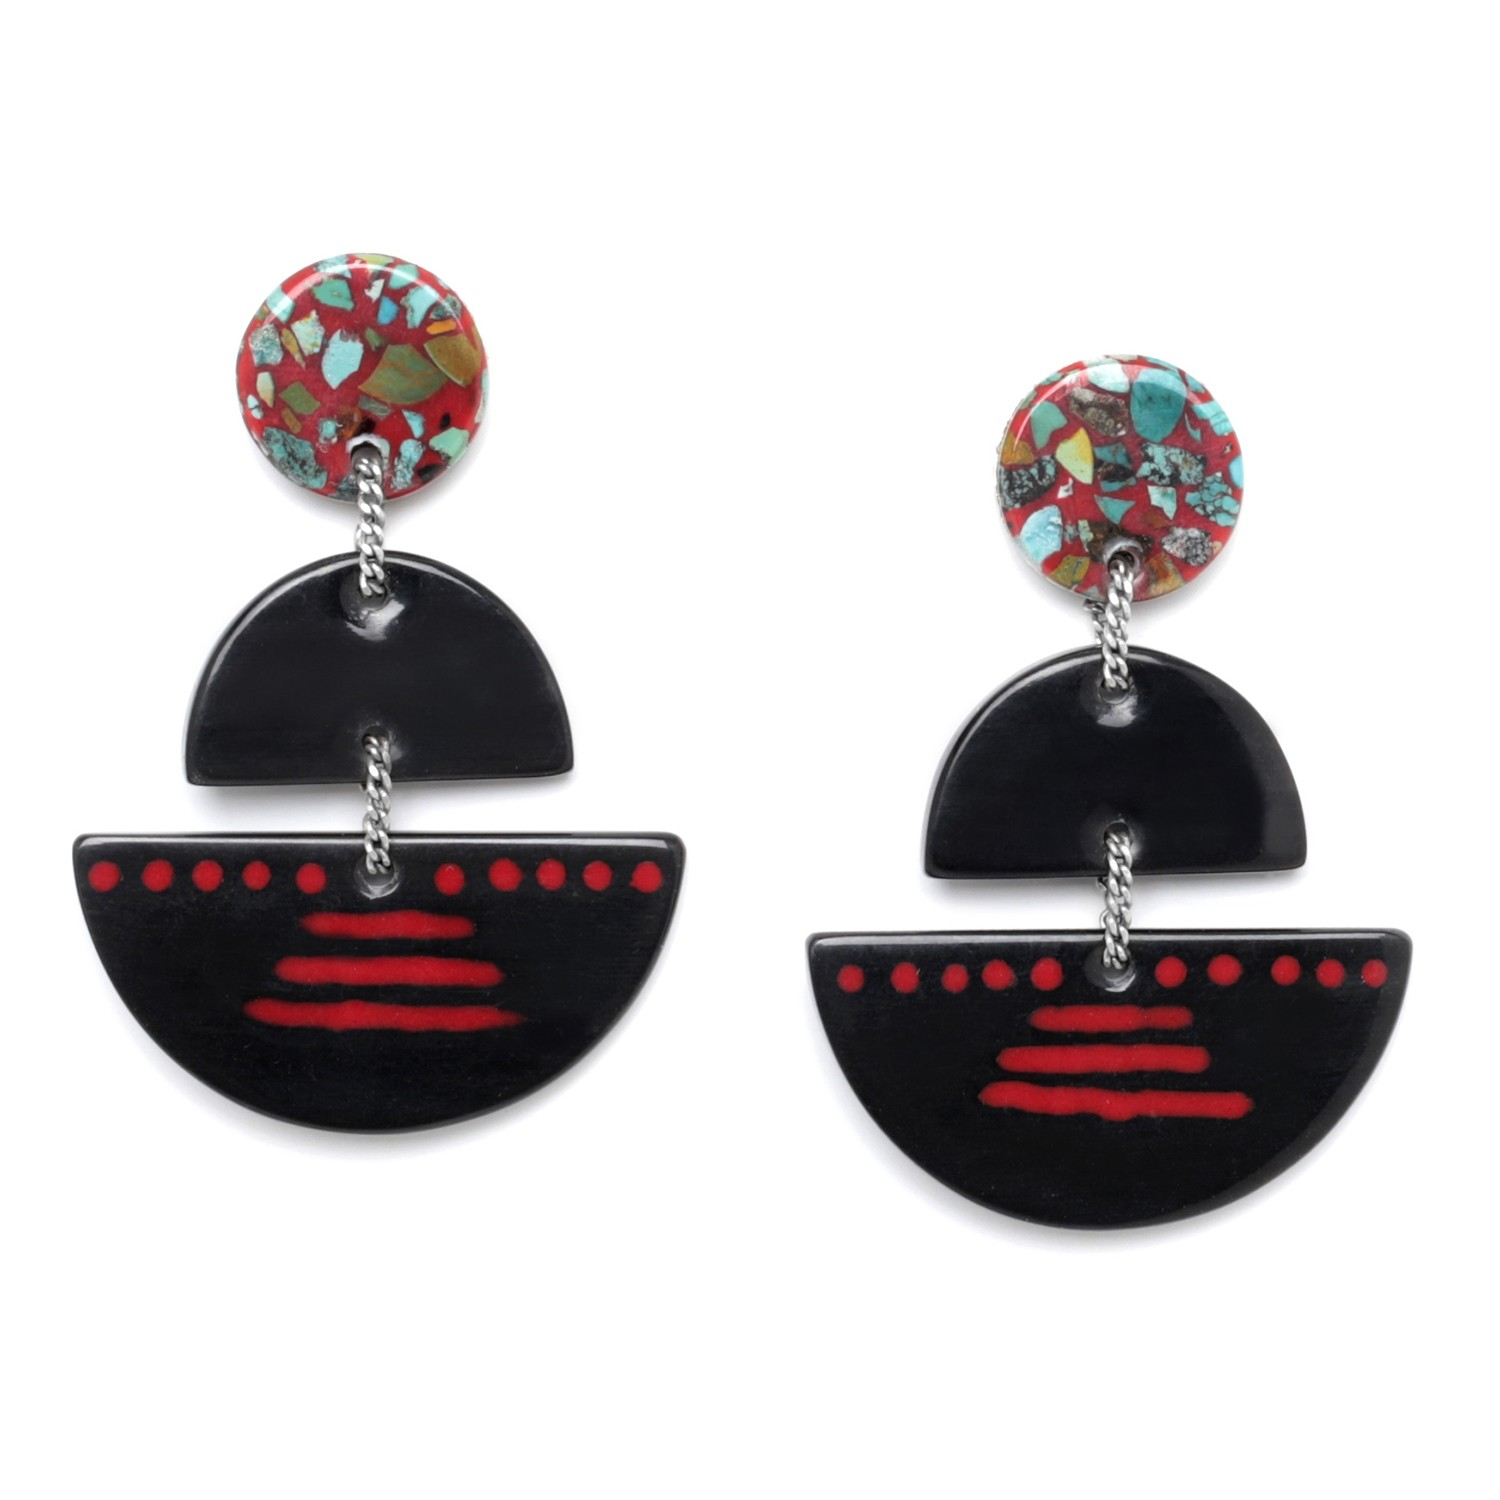 SAGARMATHA 3 pc earrings